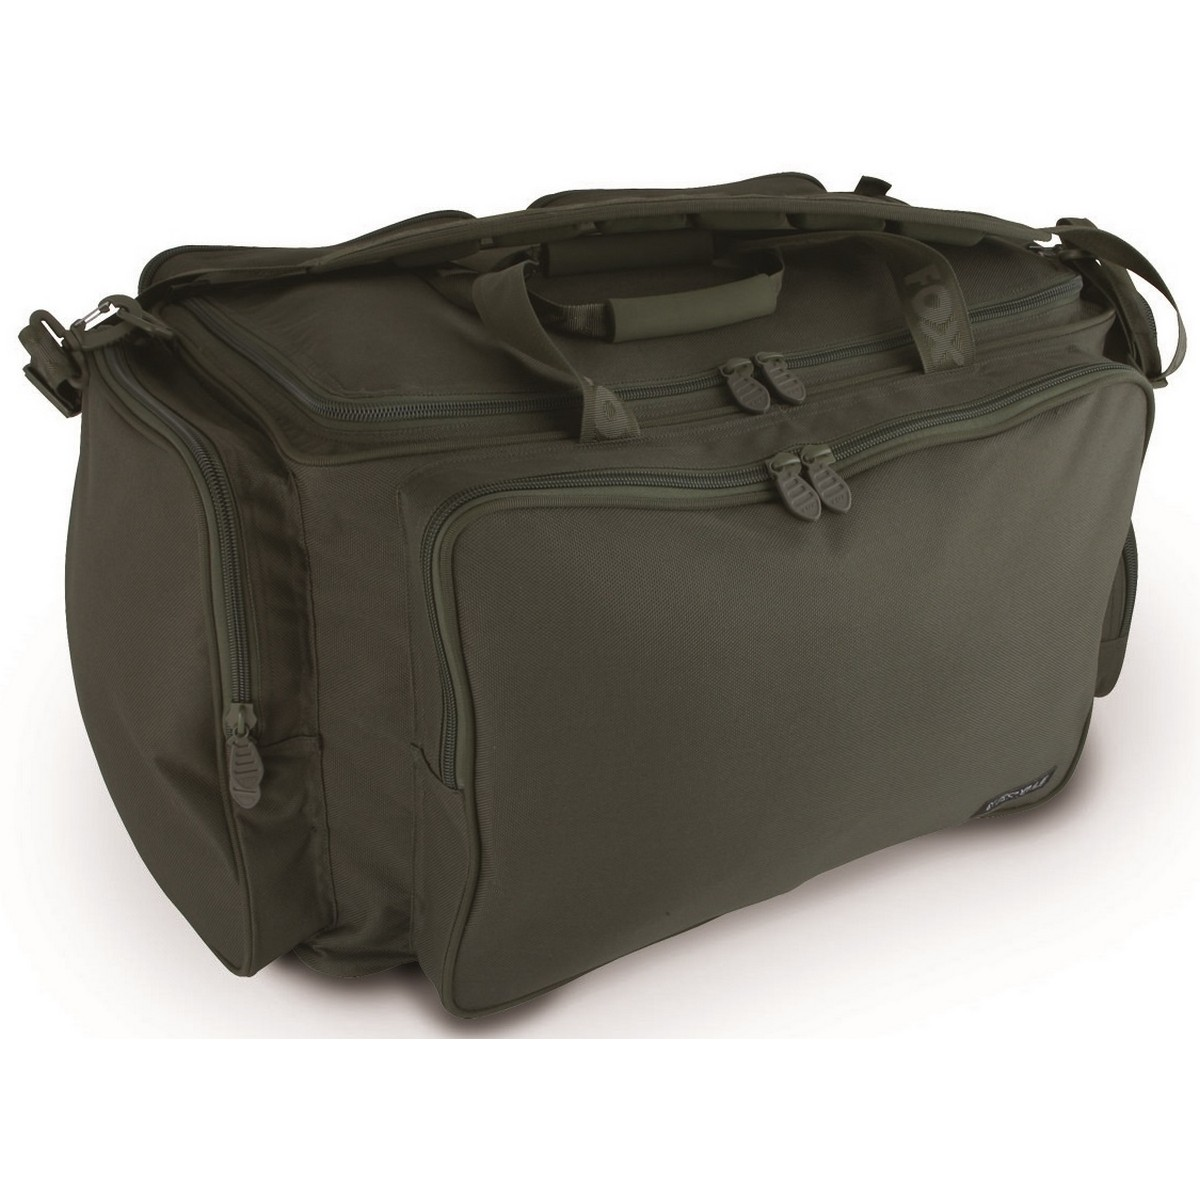 Сак рибарски FOX Royale Carryall X Large